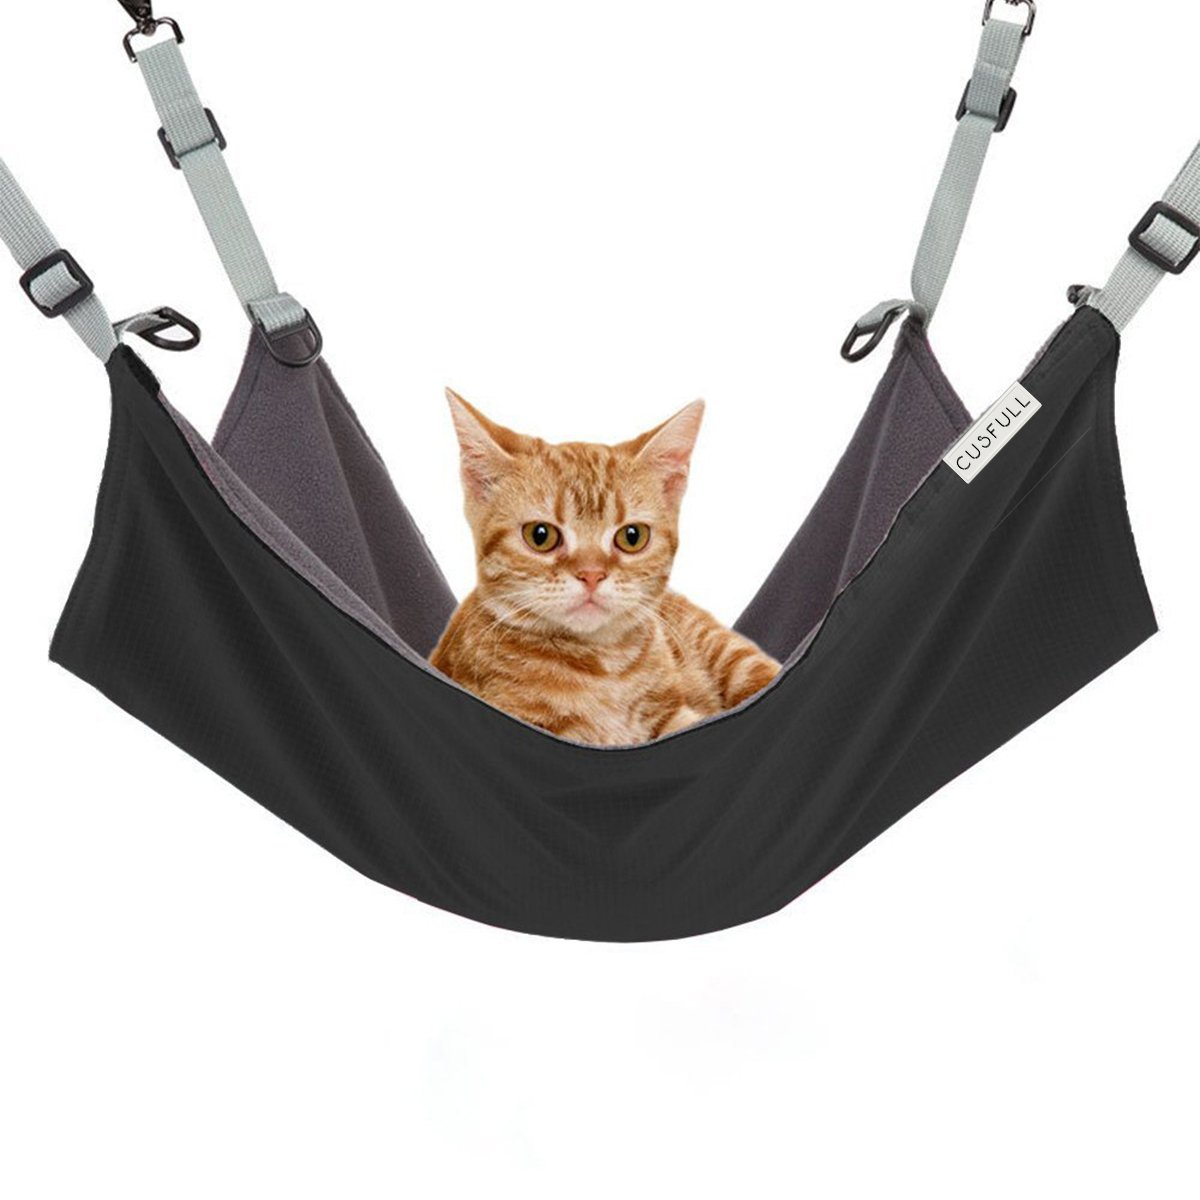 Cusfull Cat Hammock Bed Comfortable Hanging Pet Hammock Bed for Cats Small Dogs Rabbits Other Small Animals 22 x 17 in (Black)